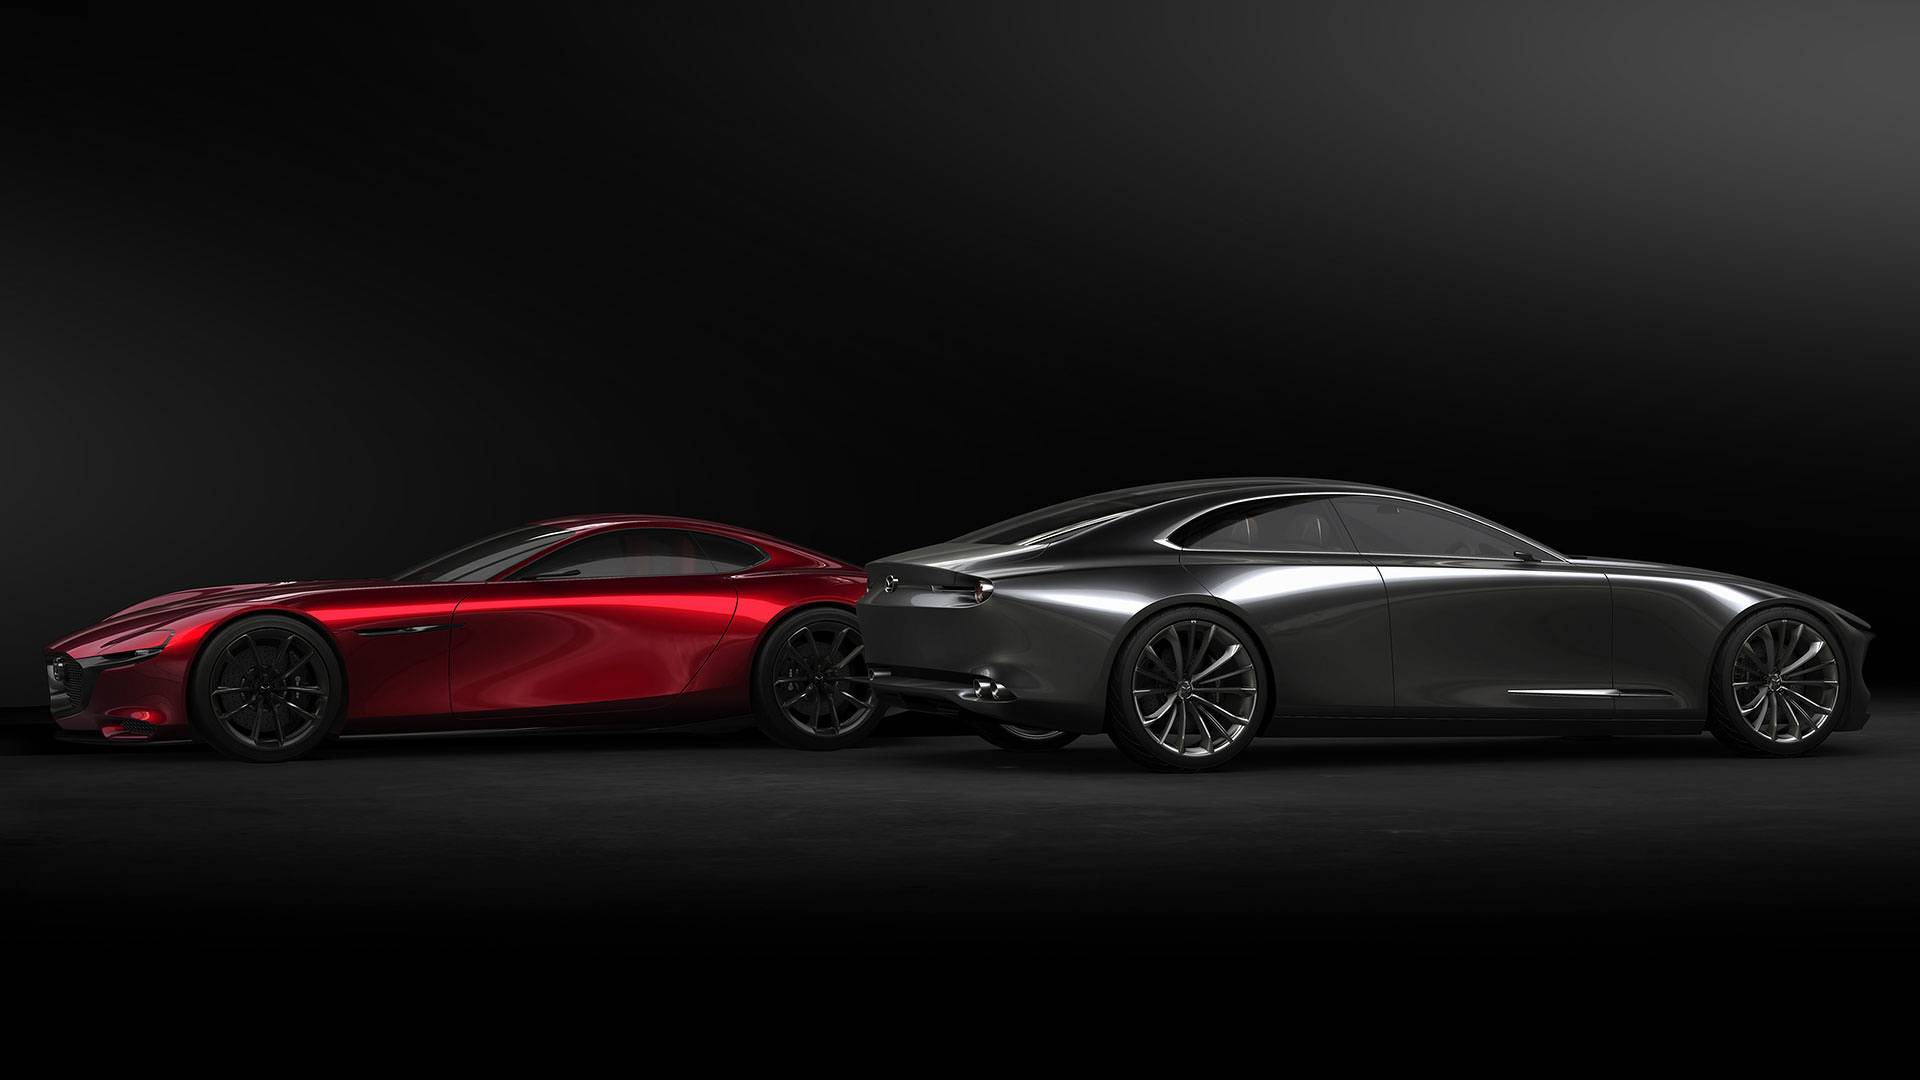 The Vision Coupe & Kai Concept Revealed at Tokyo Motor Show 2017